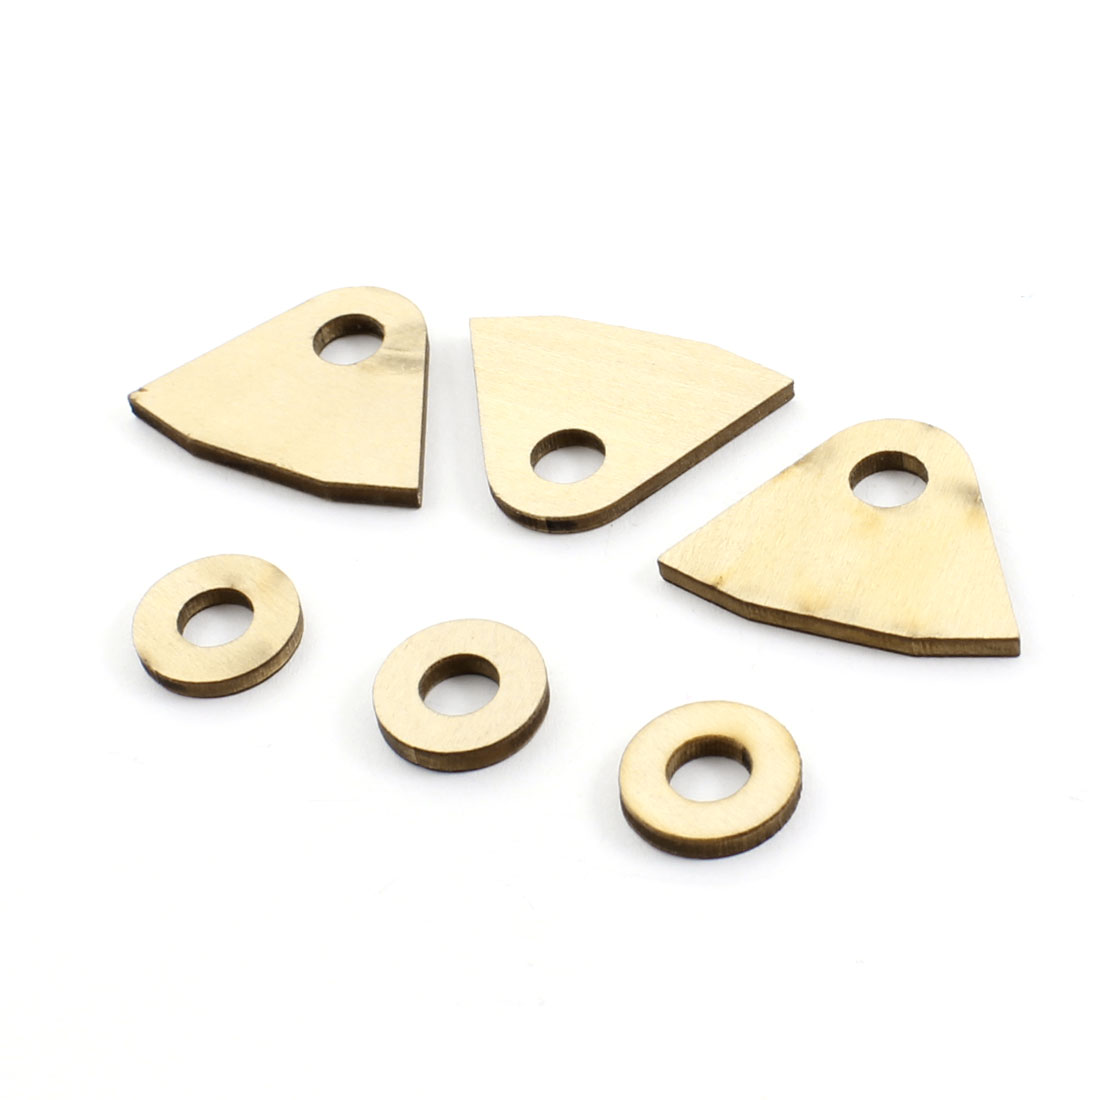 3 Pcs RC Brushless Motor Electric Boat Wooden Mount Stand for 4.76mm Shaft